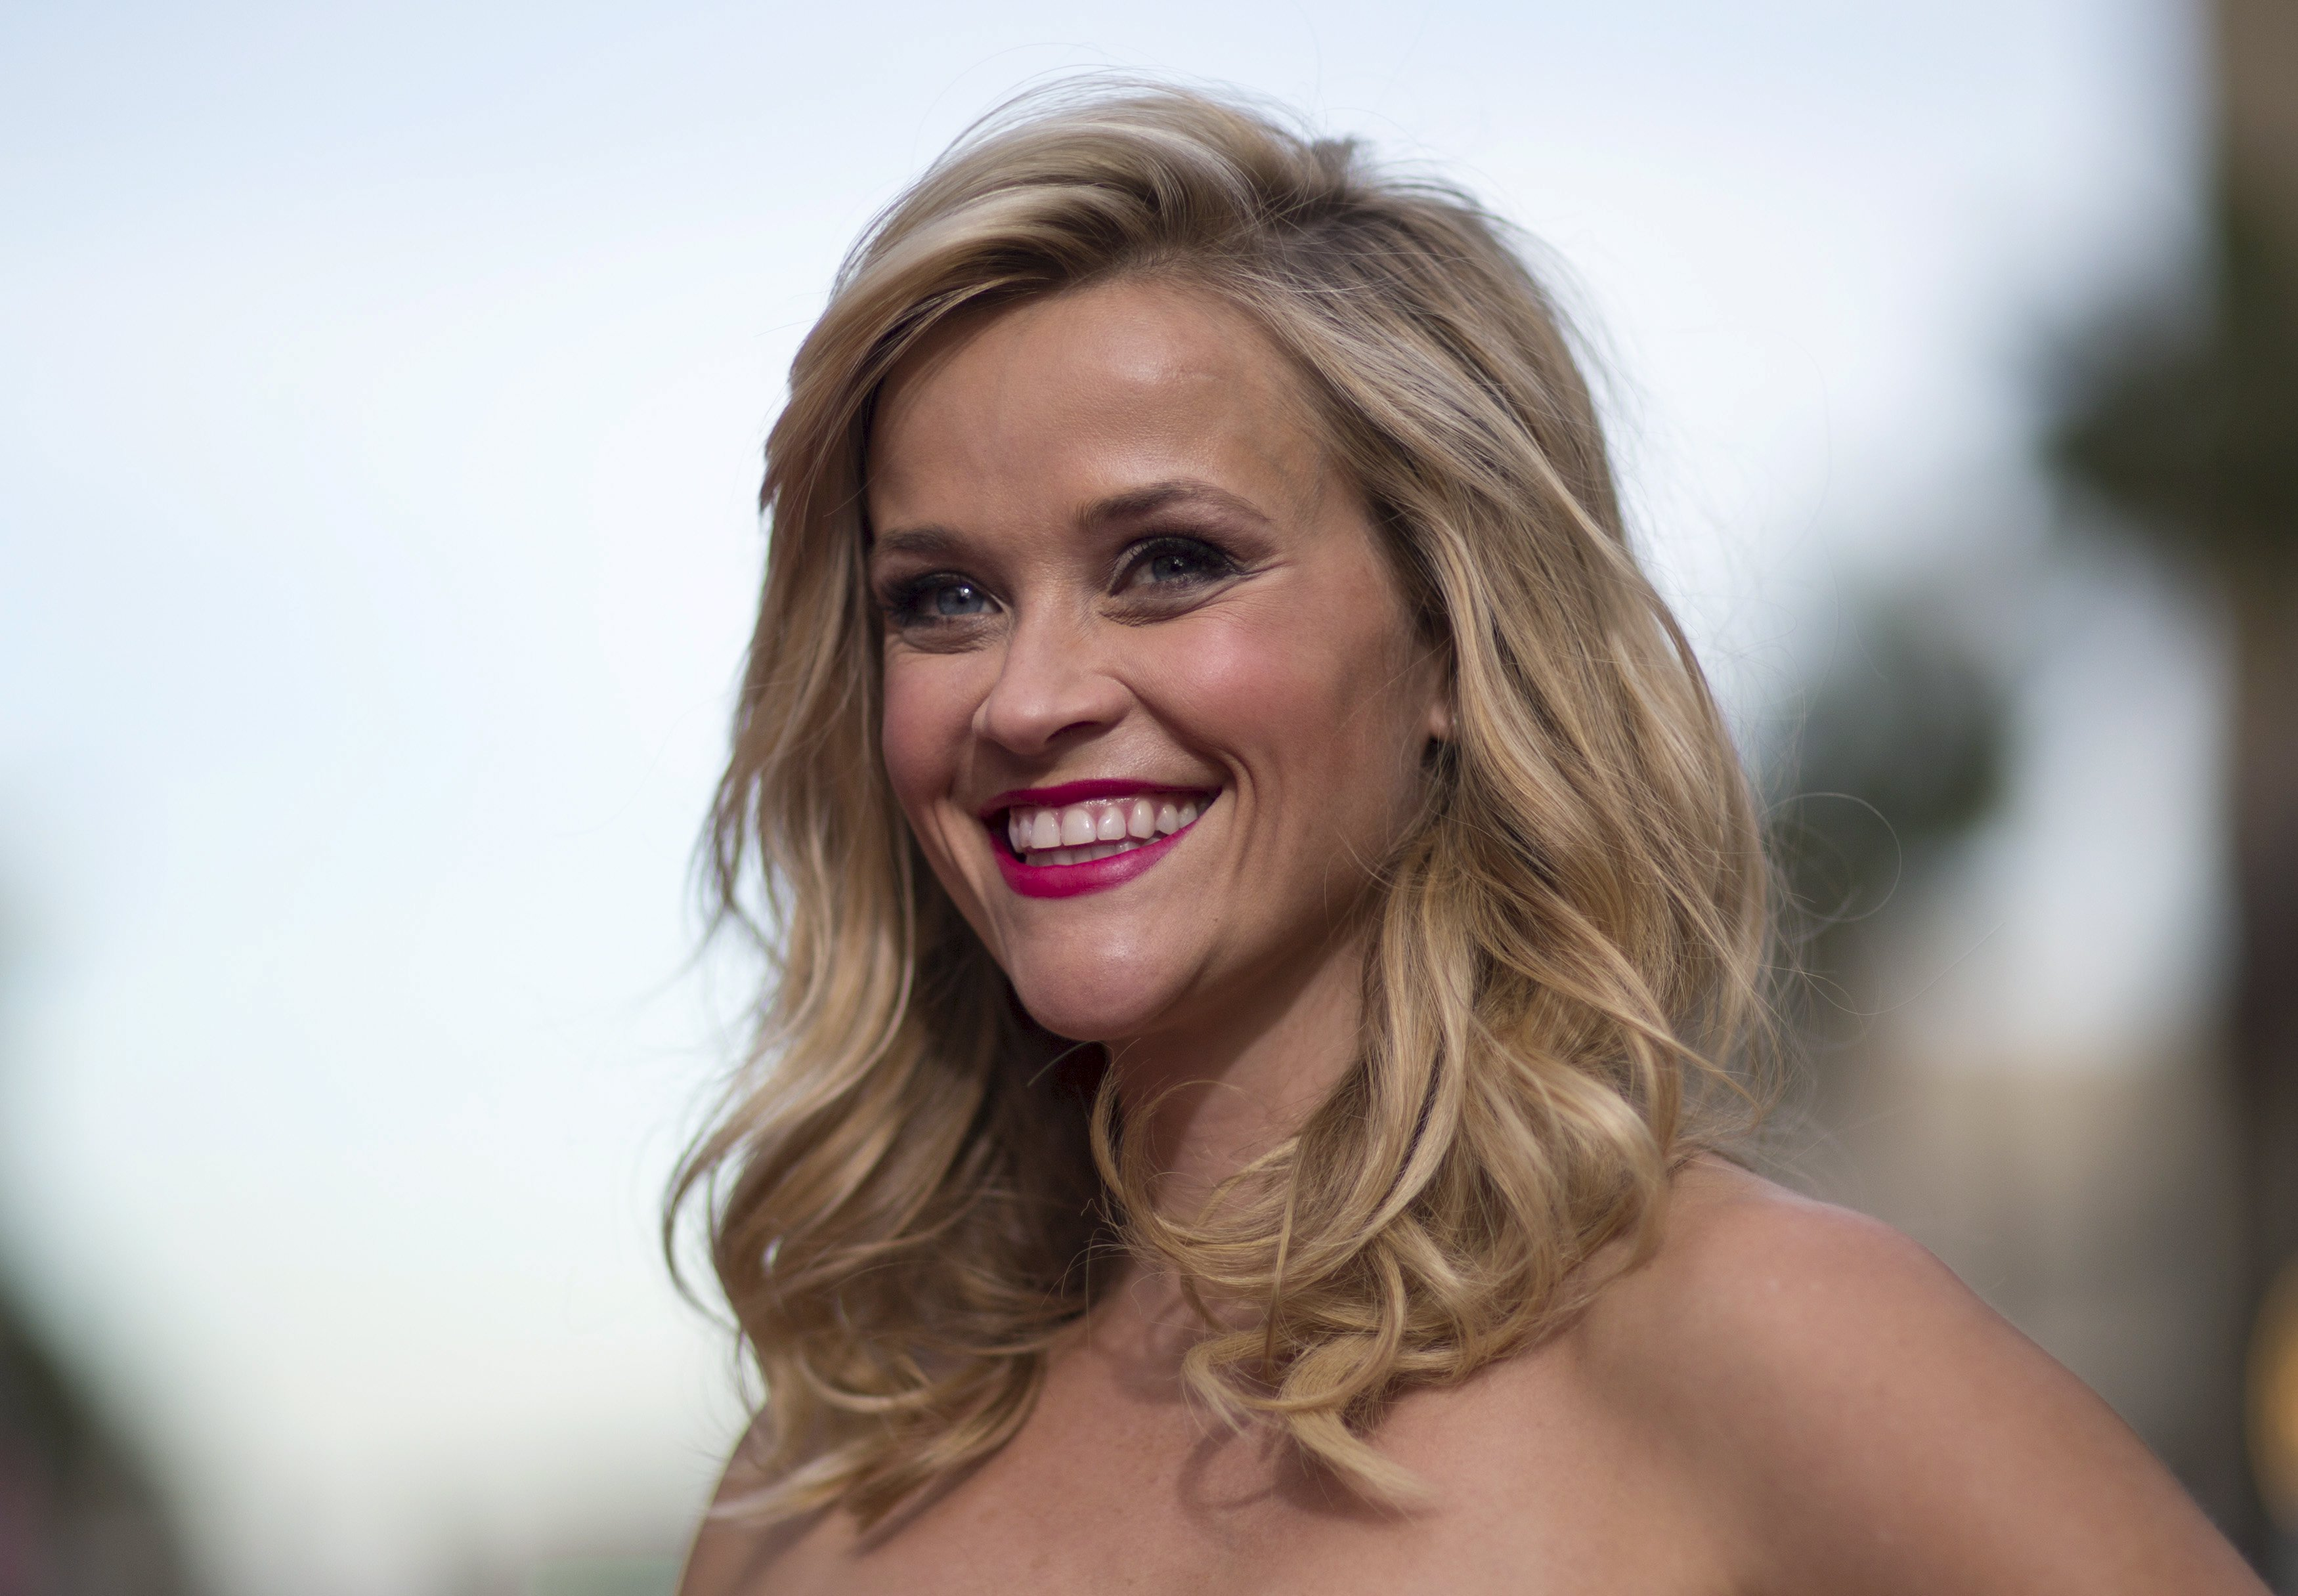 The Renaissance Of Reese Witherspoon